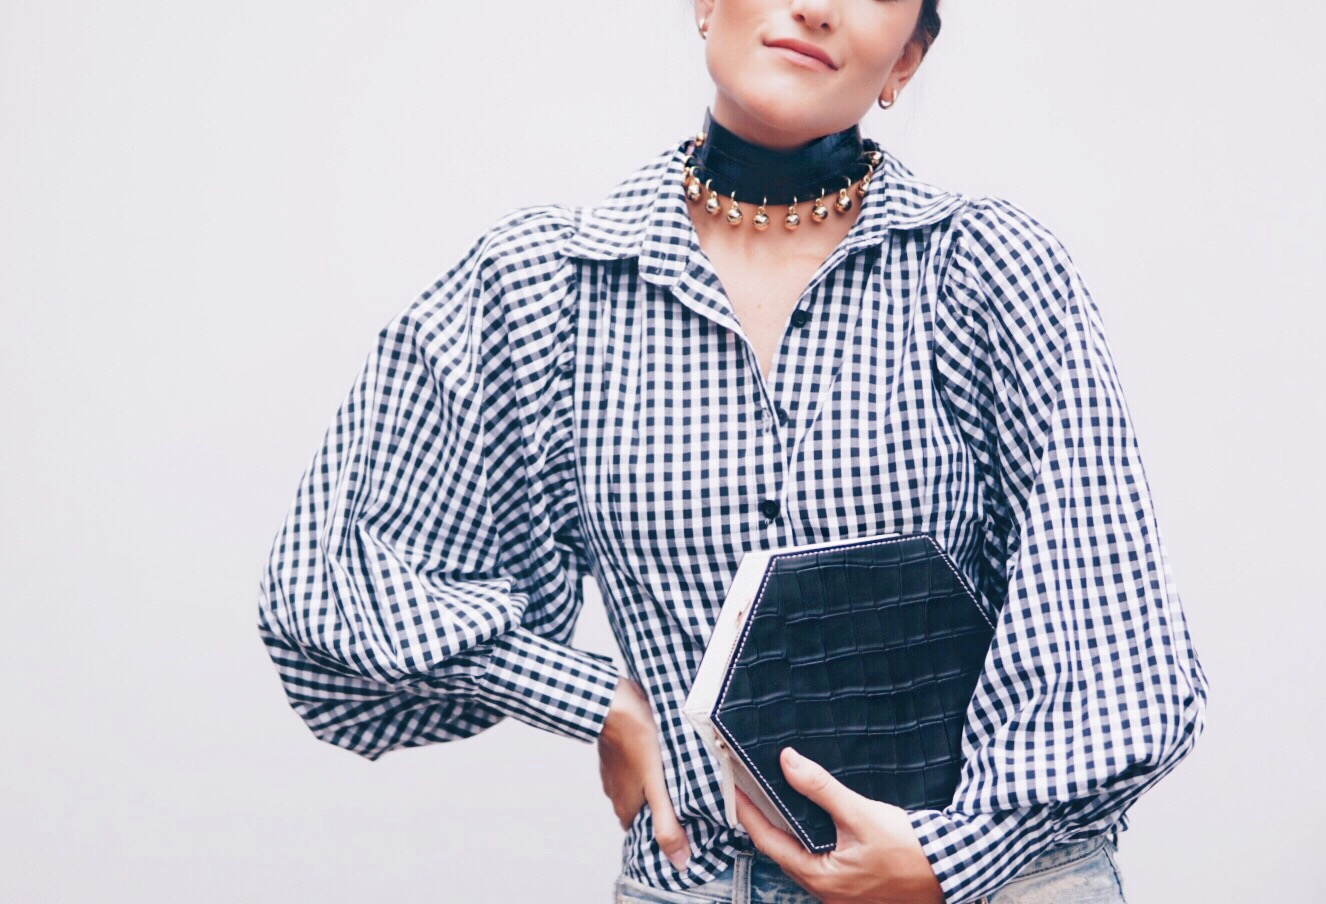 SISTERLYSTYLE   WEARING OUR   NEX CHOKER   AND THE TIMELESS BLACK & WHITE   MINI HEXA BAG  .